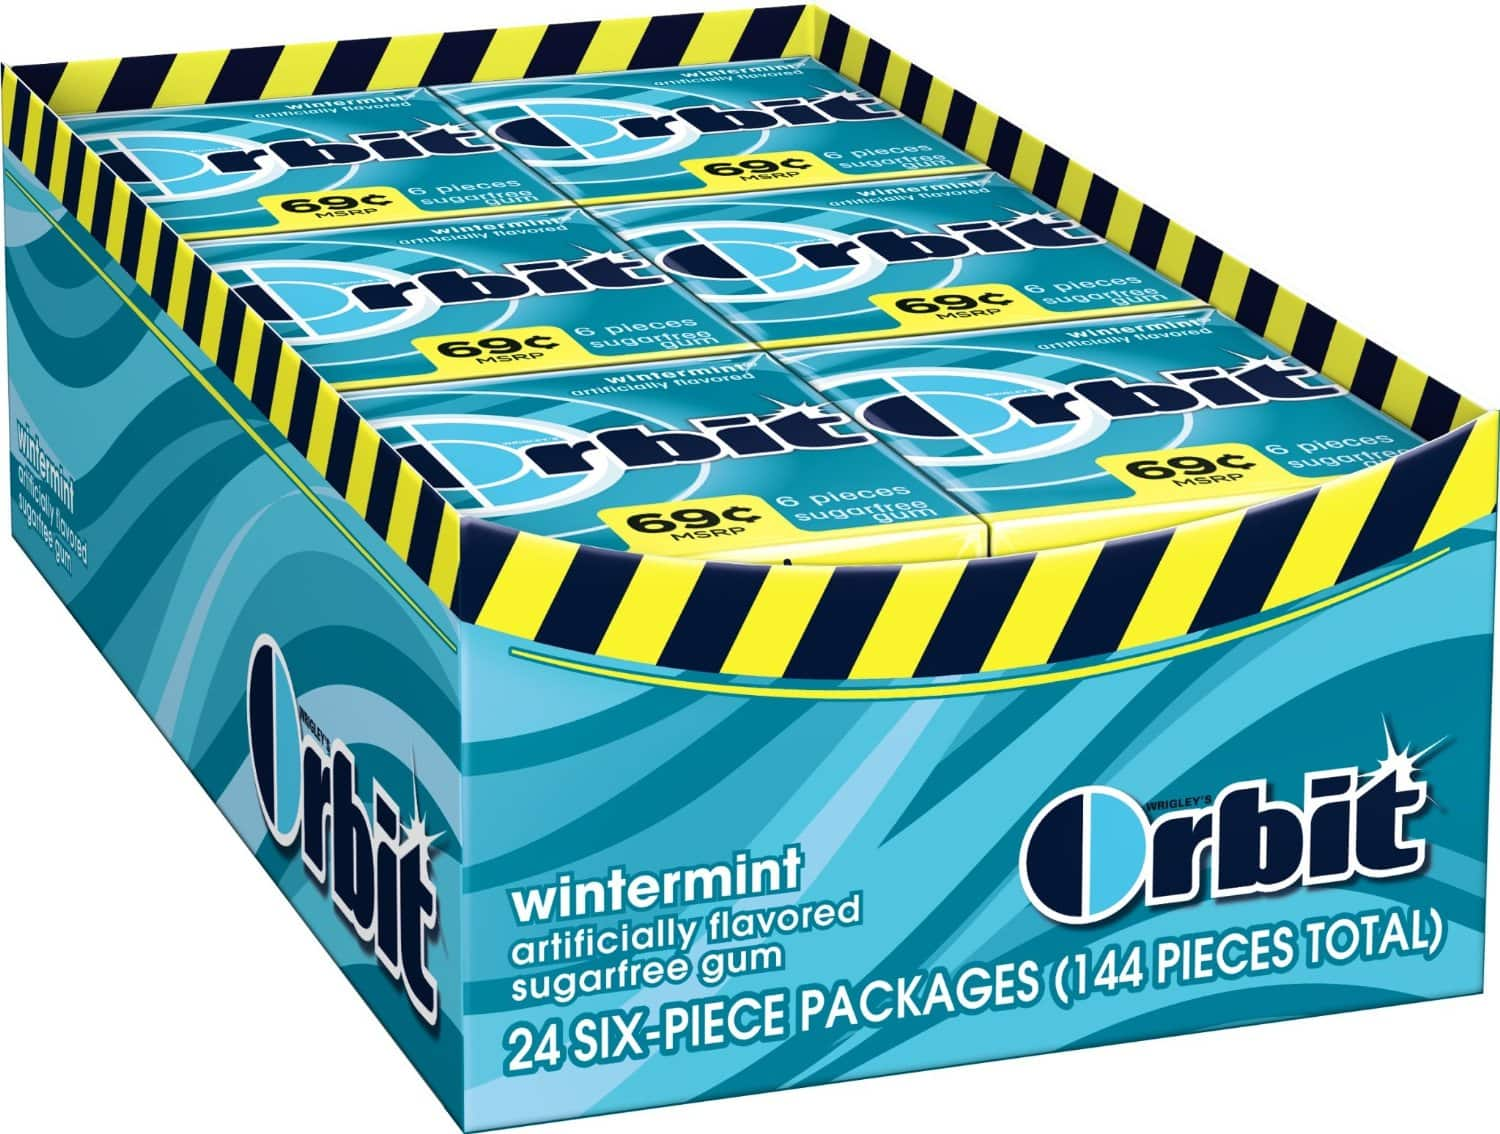 Orbit Wintermint Sugarfree Gum 6 pc, (Pack of 24) $5.11 or less + free shipping